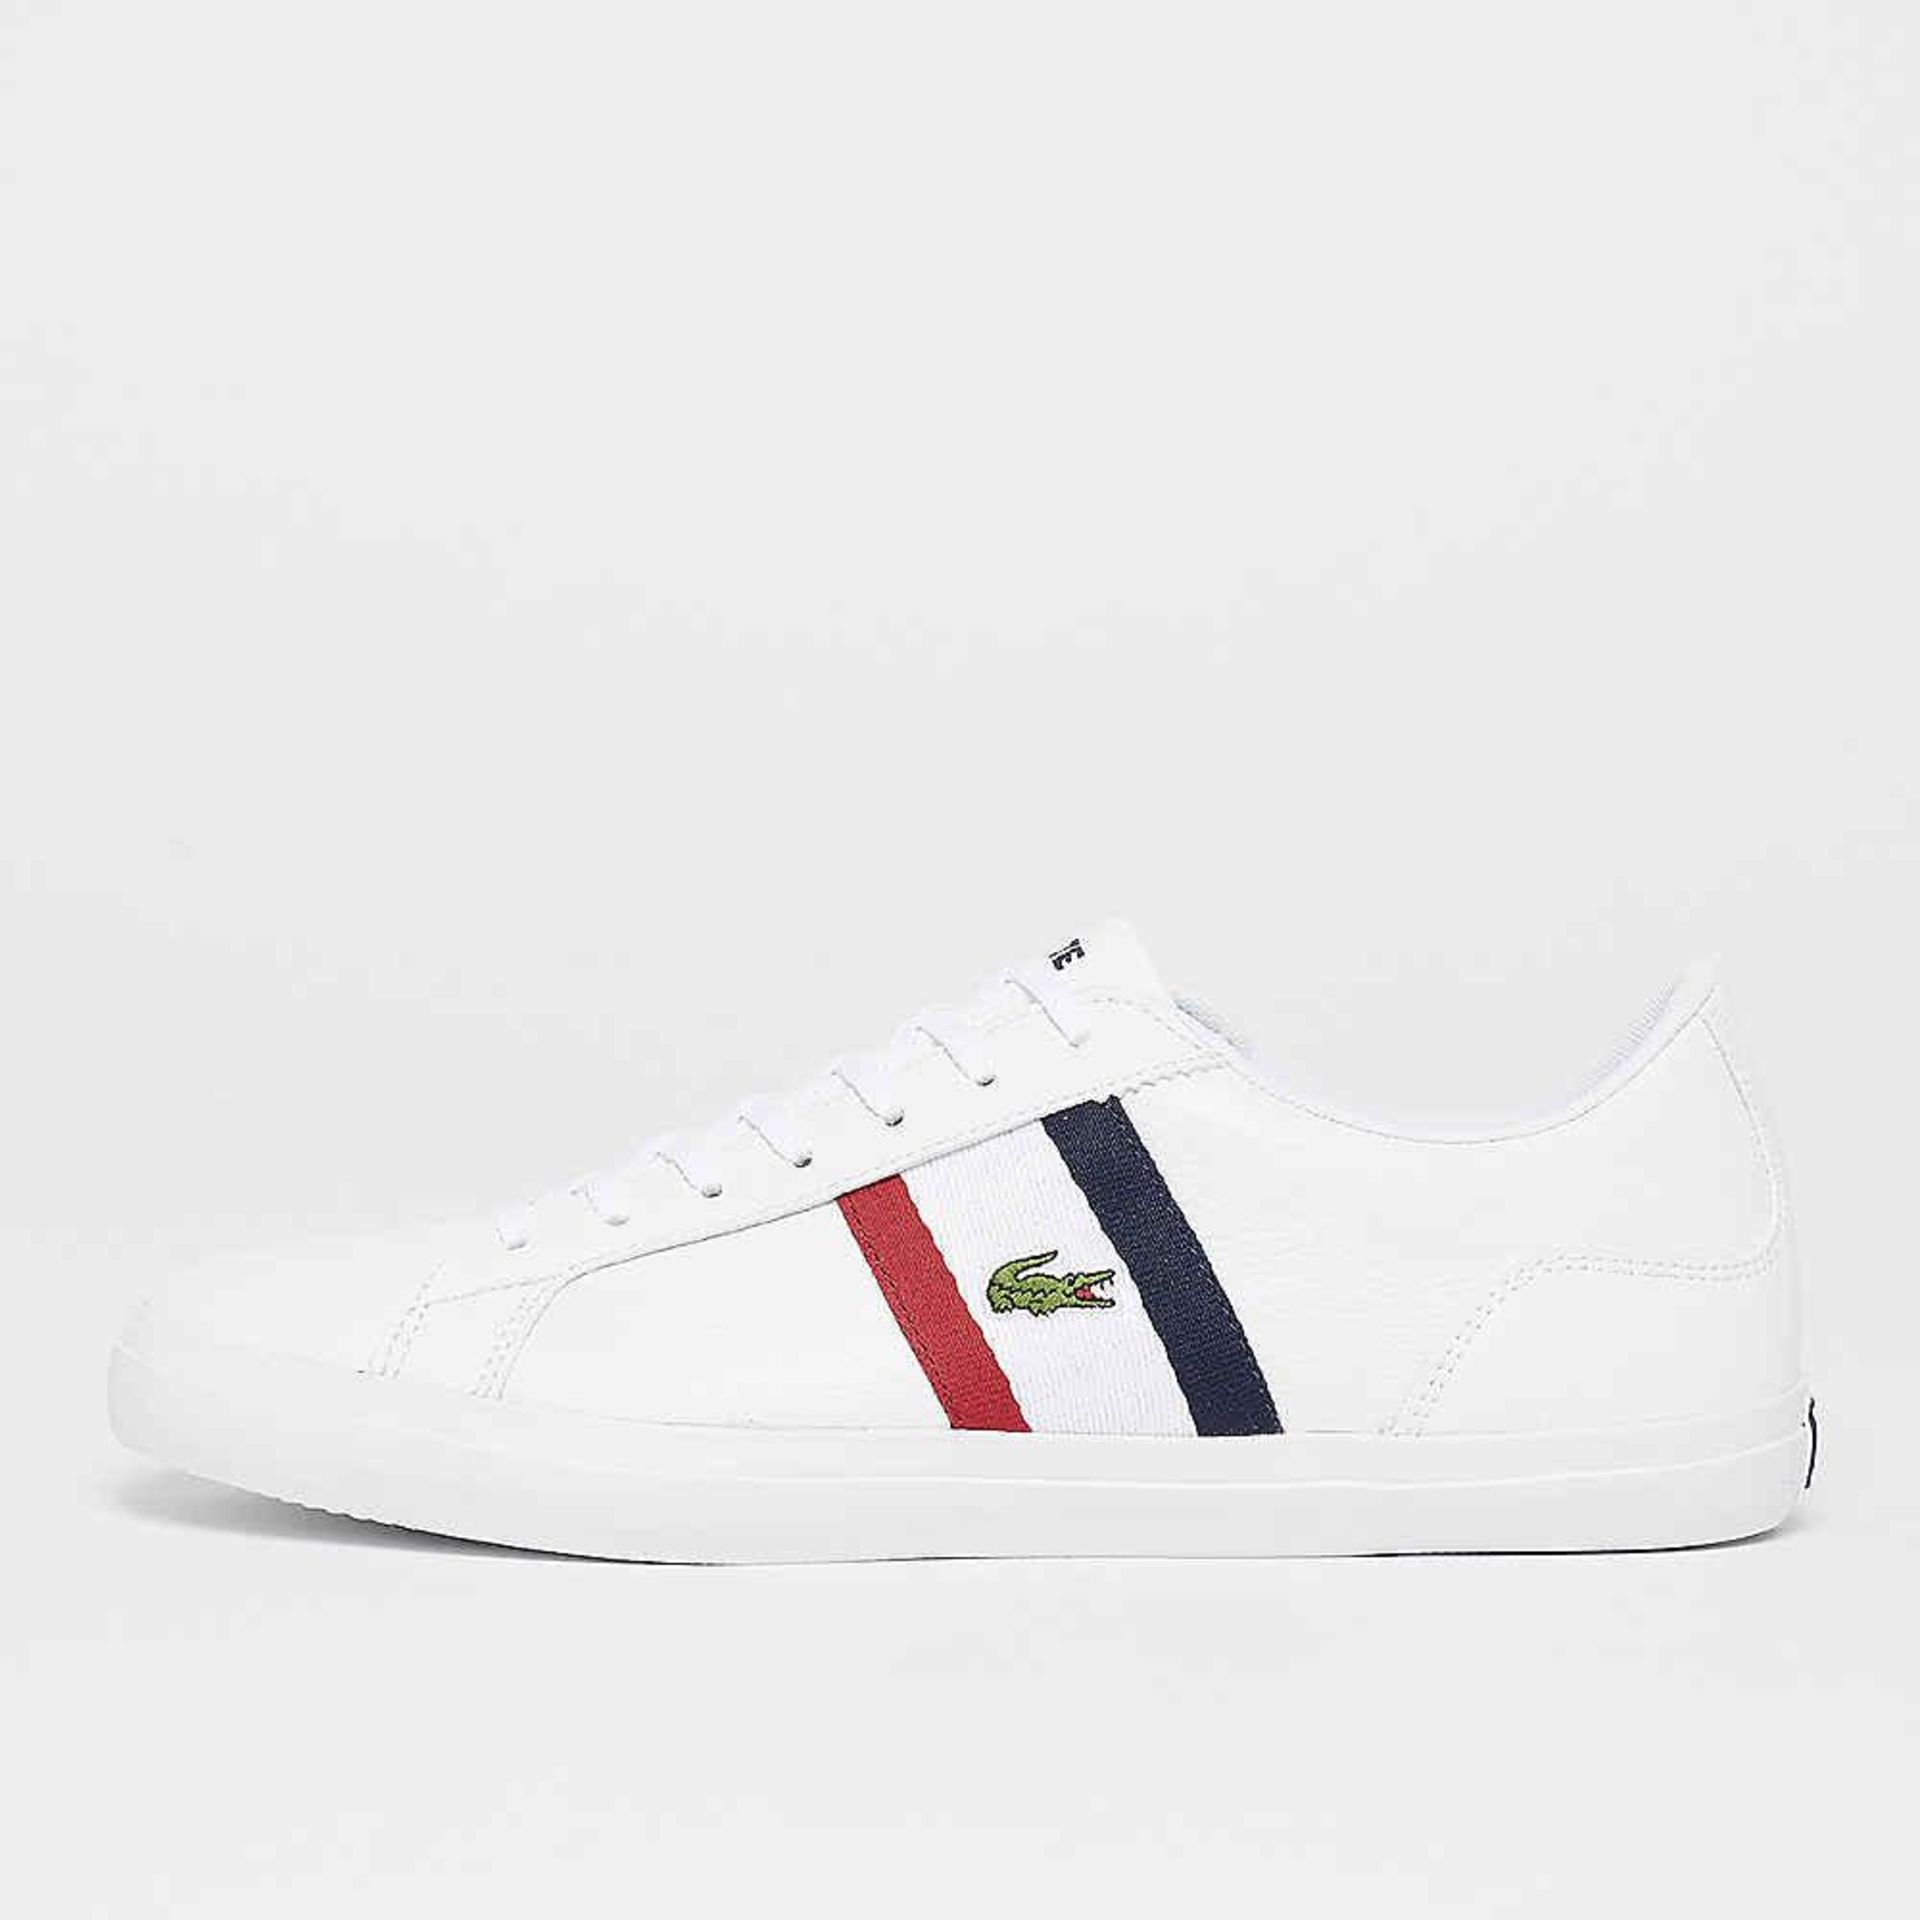 + VAT Brand New Lacoste Trainers UK Size 6.5 - White Red Navy - Leather & Sythetic - EU Size 40 -